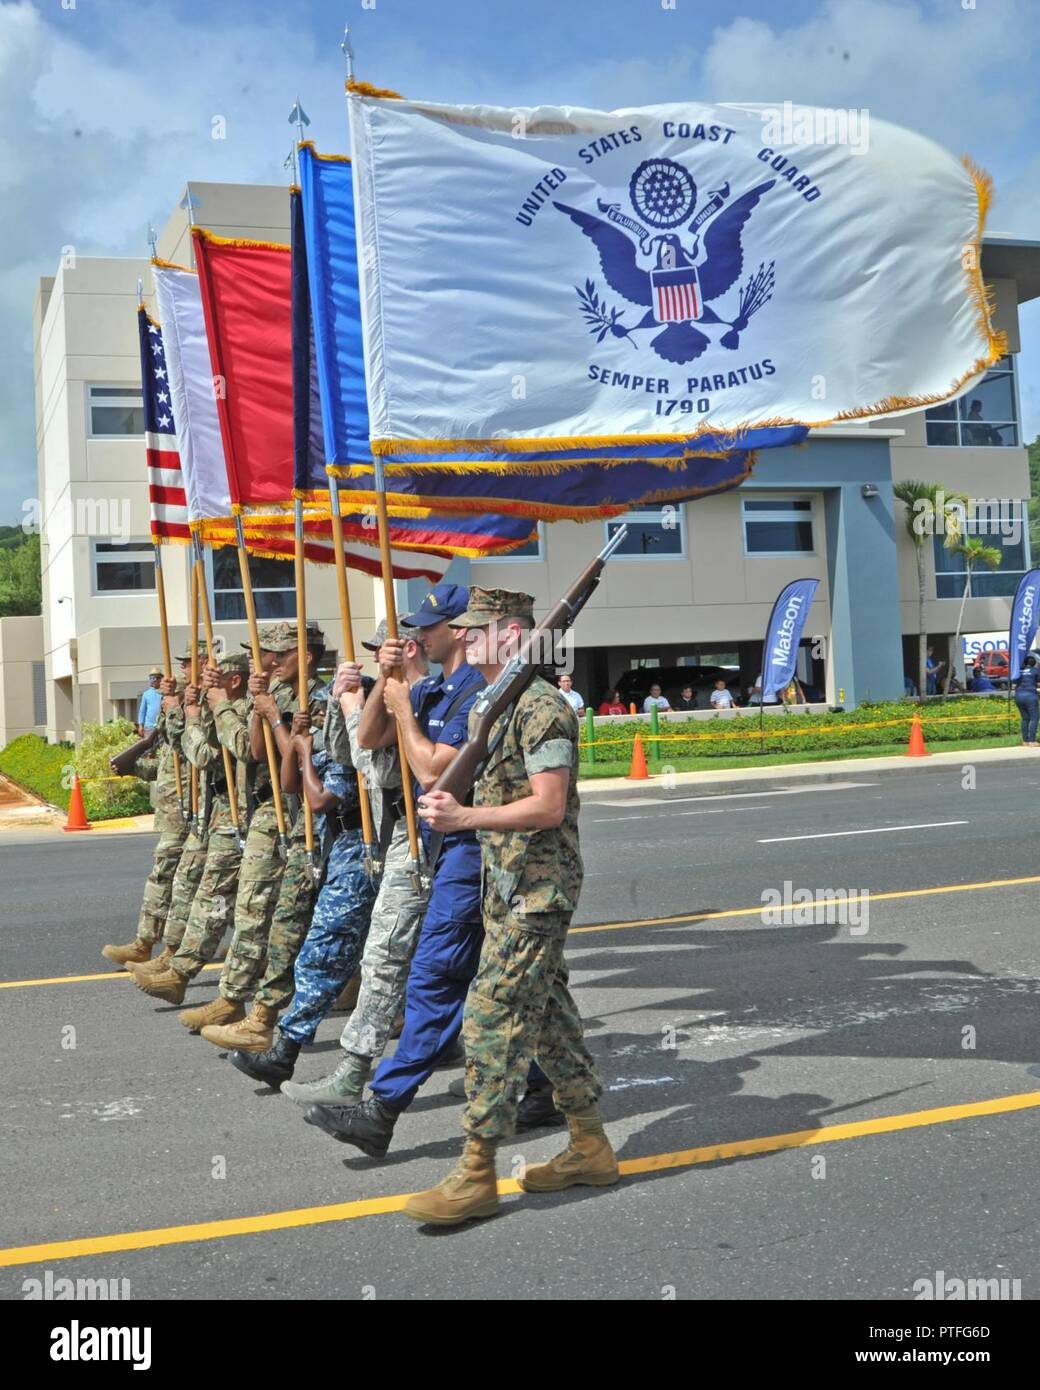 Guam (July 21, 2017) A joint- service color guard parades the colors during Guam's annual Liberation Day Parade in Hagatna, Guam, July 21. The 2017 Guam Liberation Parade celebrates the 73rd anniversary of the liberation of Guam from Japanese occupation by U.S. forces during World War II. - Stock Image